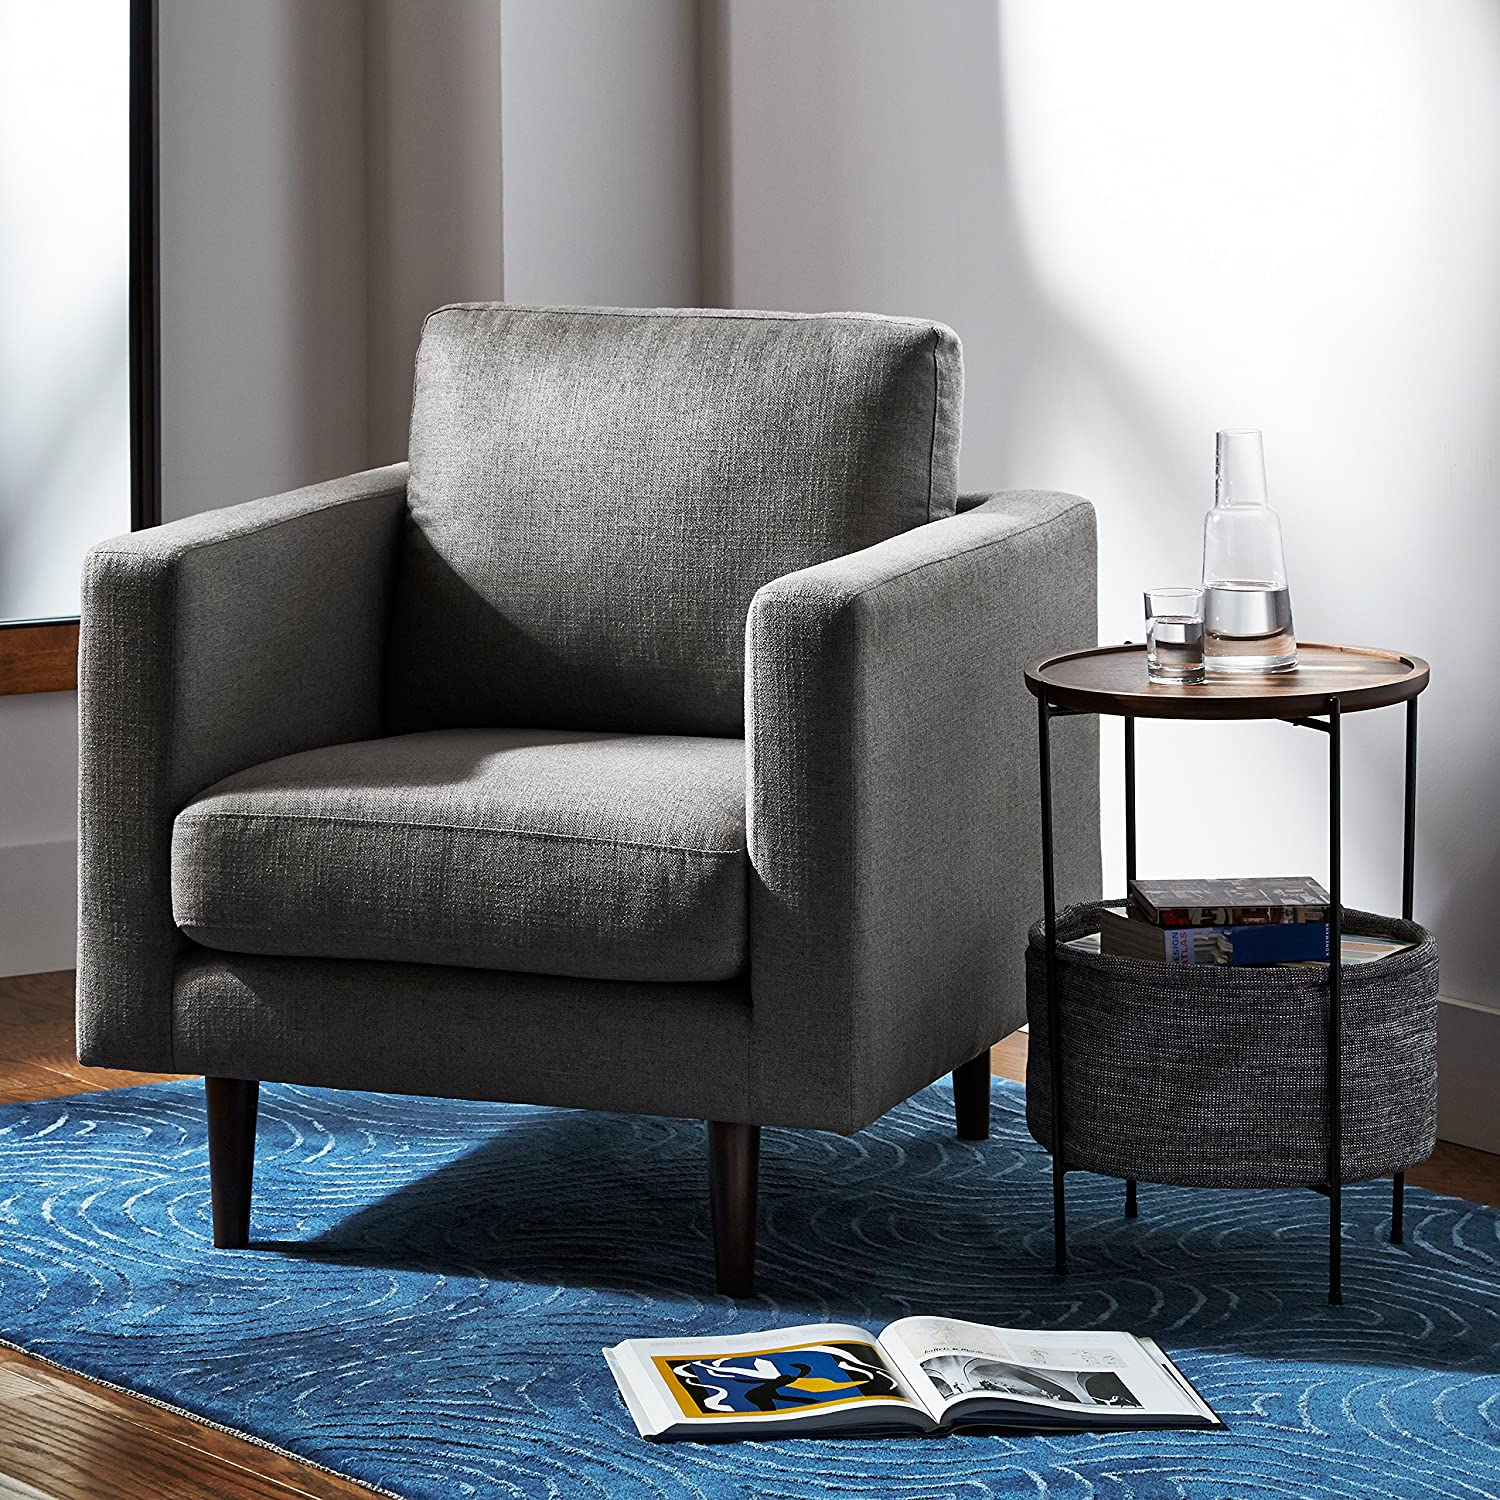 The 5 Best Accent Chairs In 2018: Reviews & Buying Guide 18